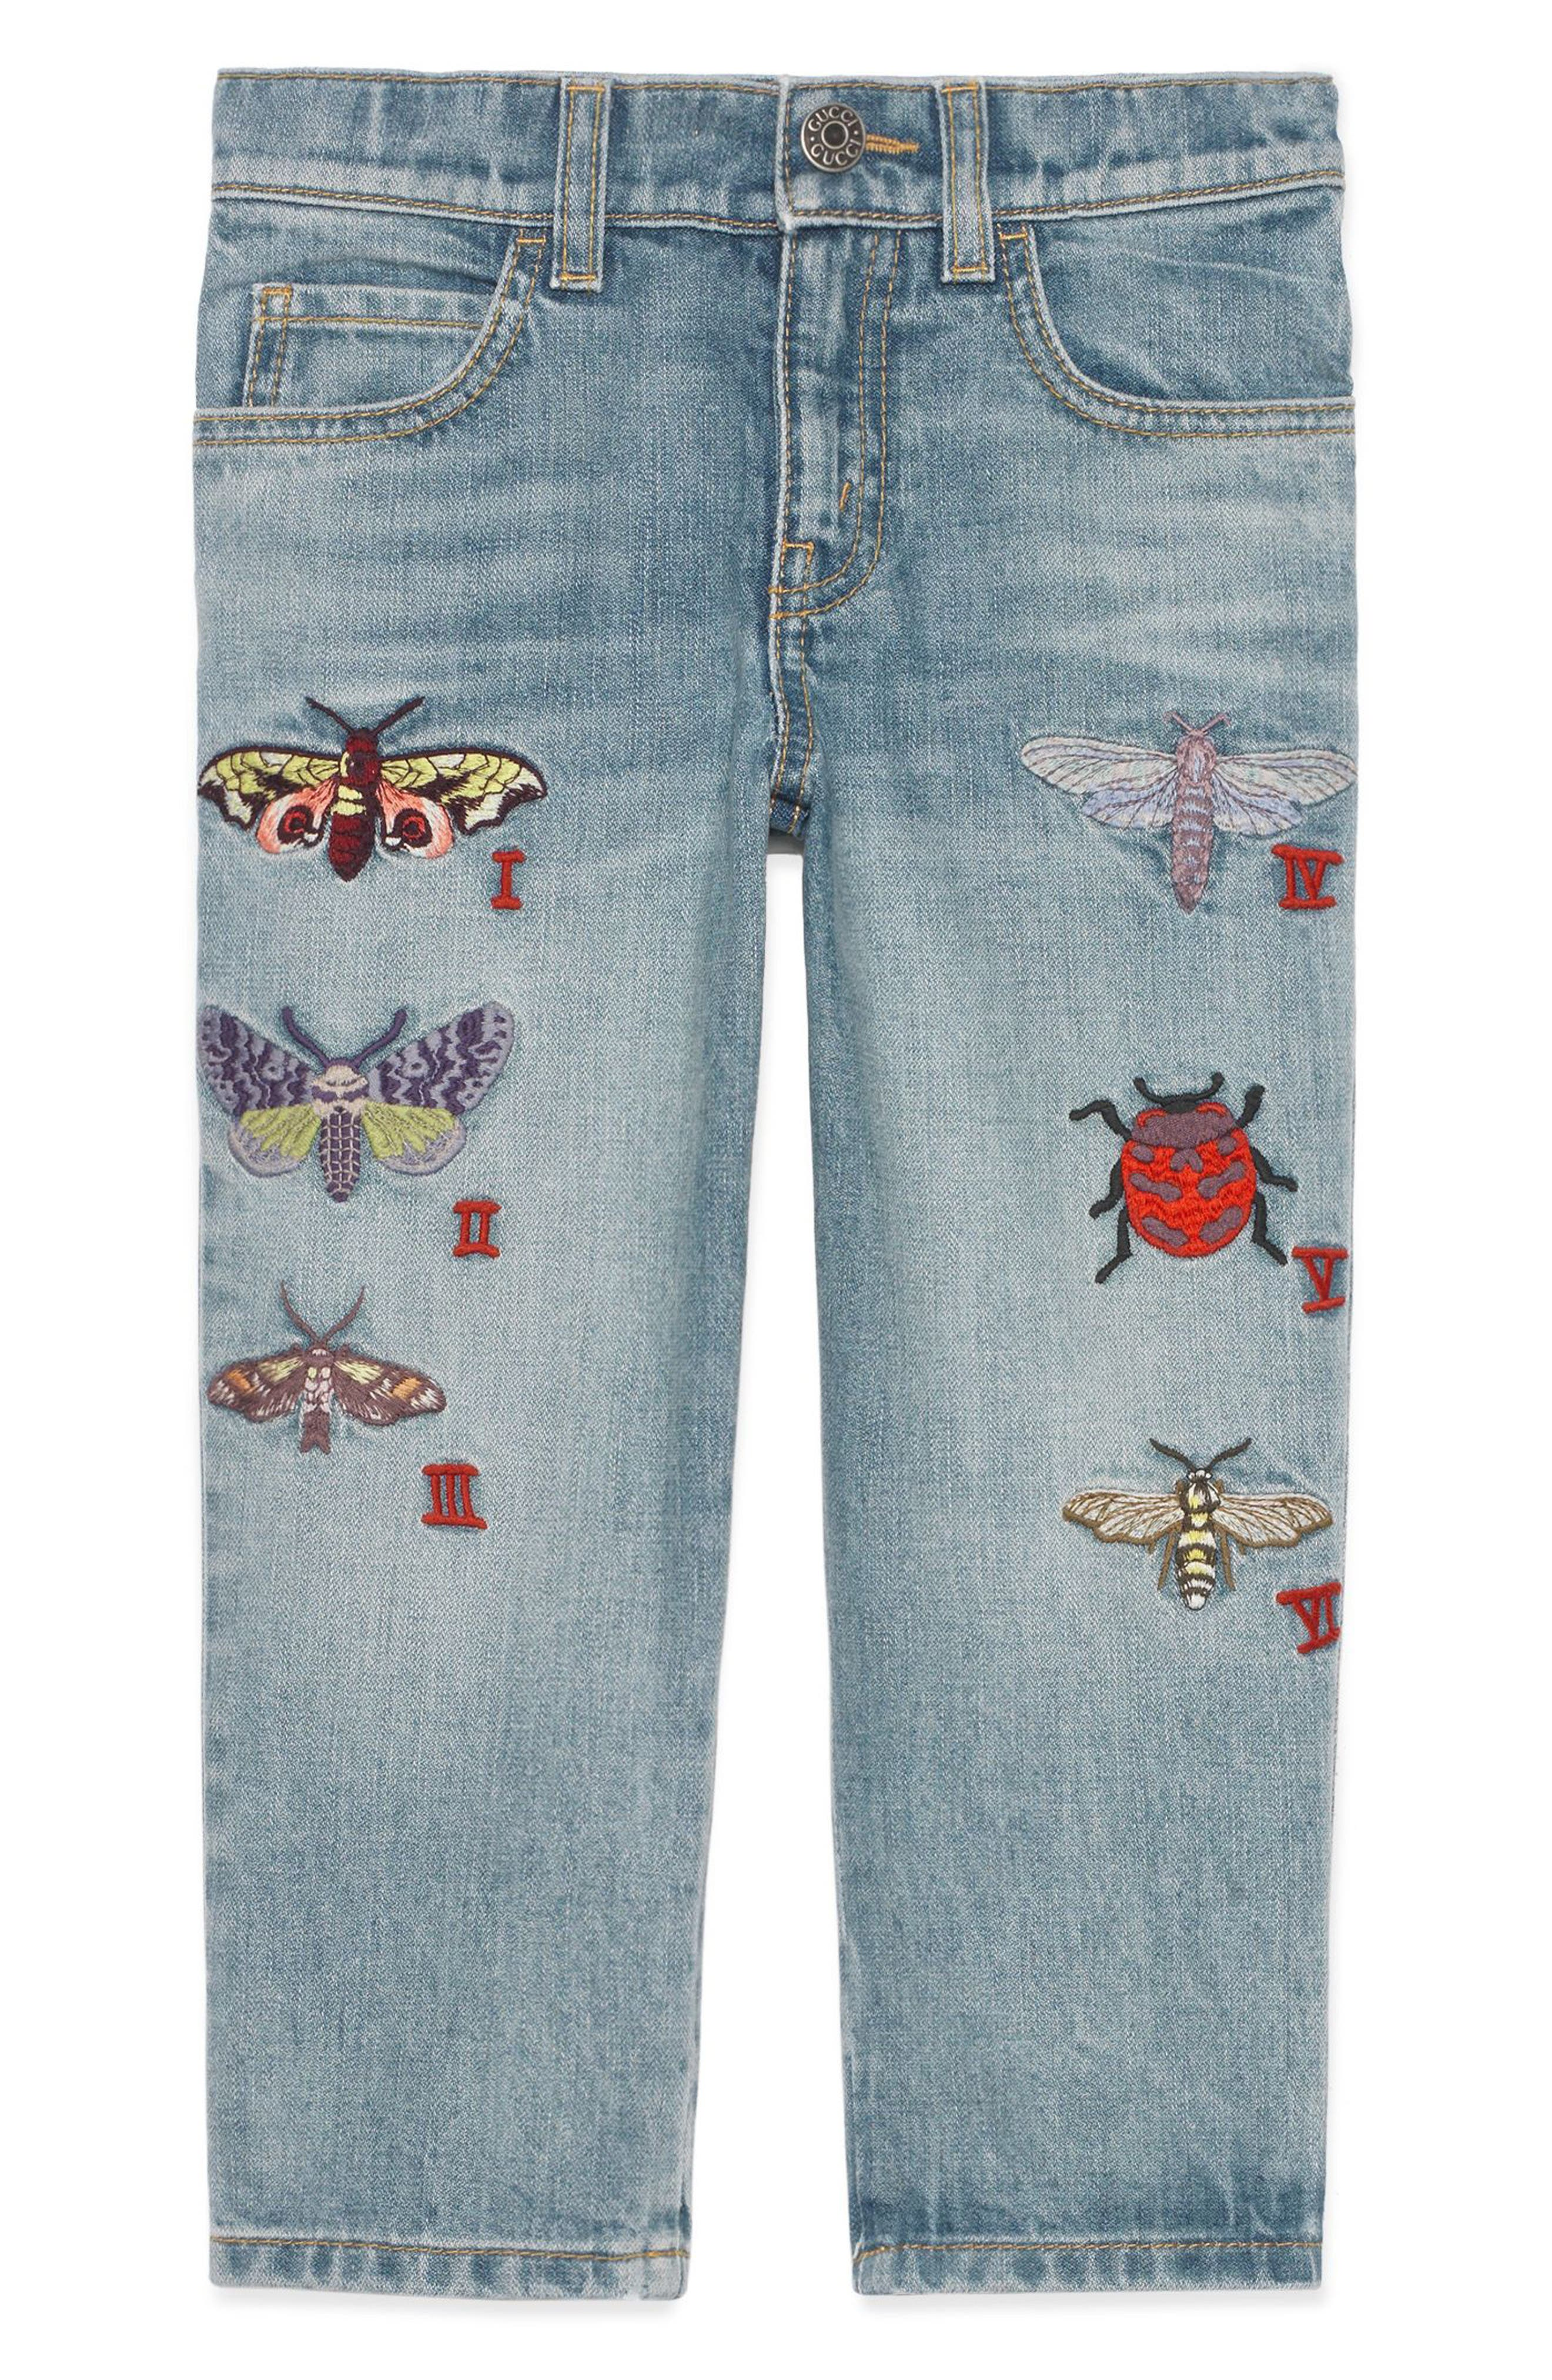 Alternate Image 1 Selected - Gucci Insect Appliqué Jeans (Little Girls & Big Girls)